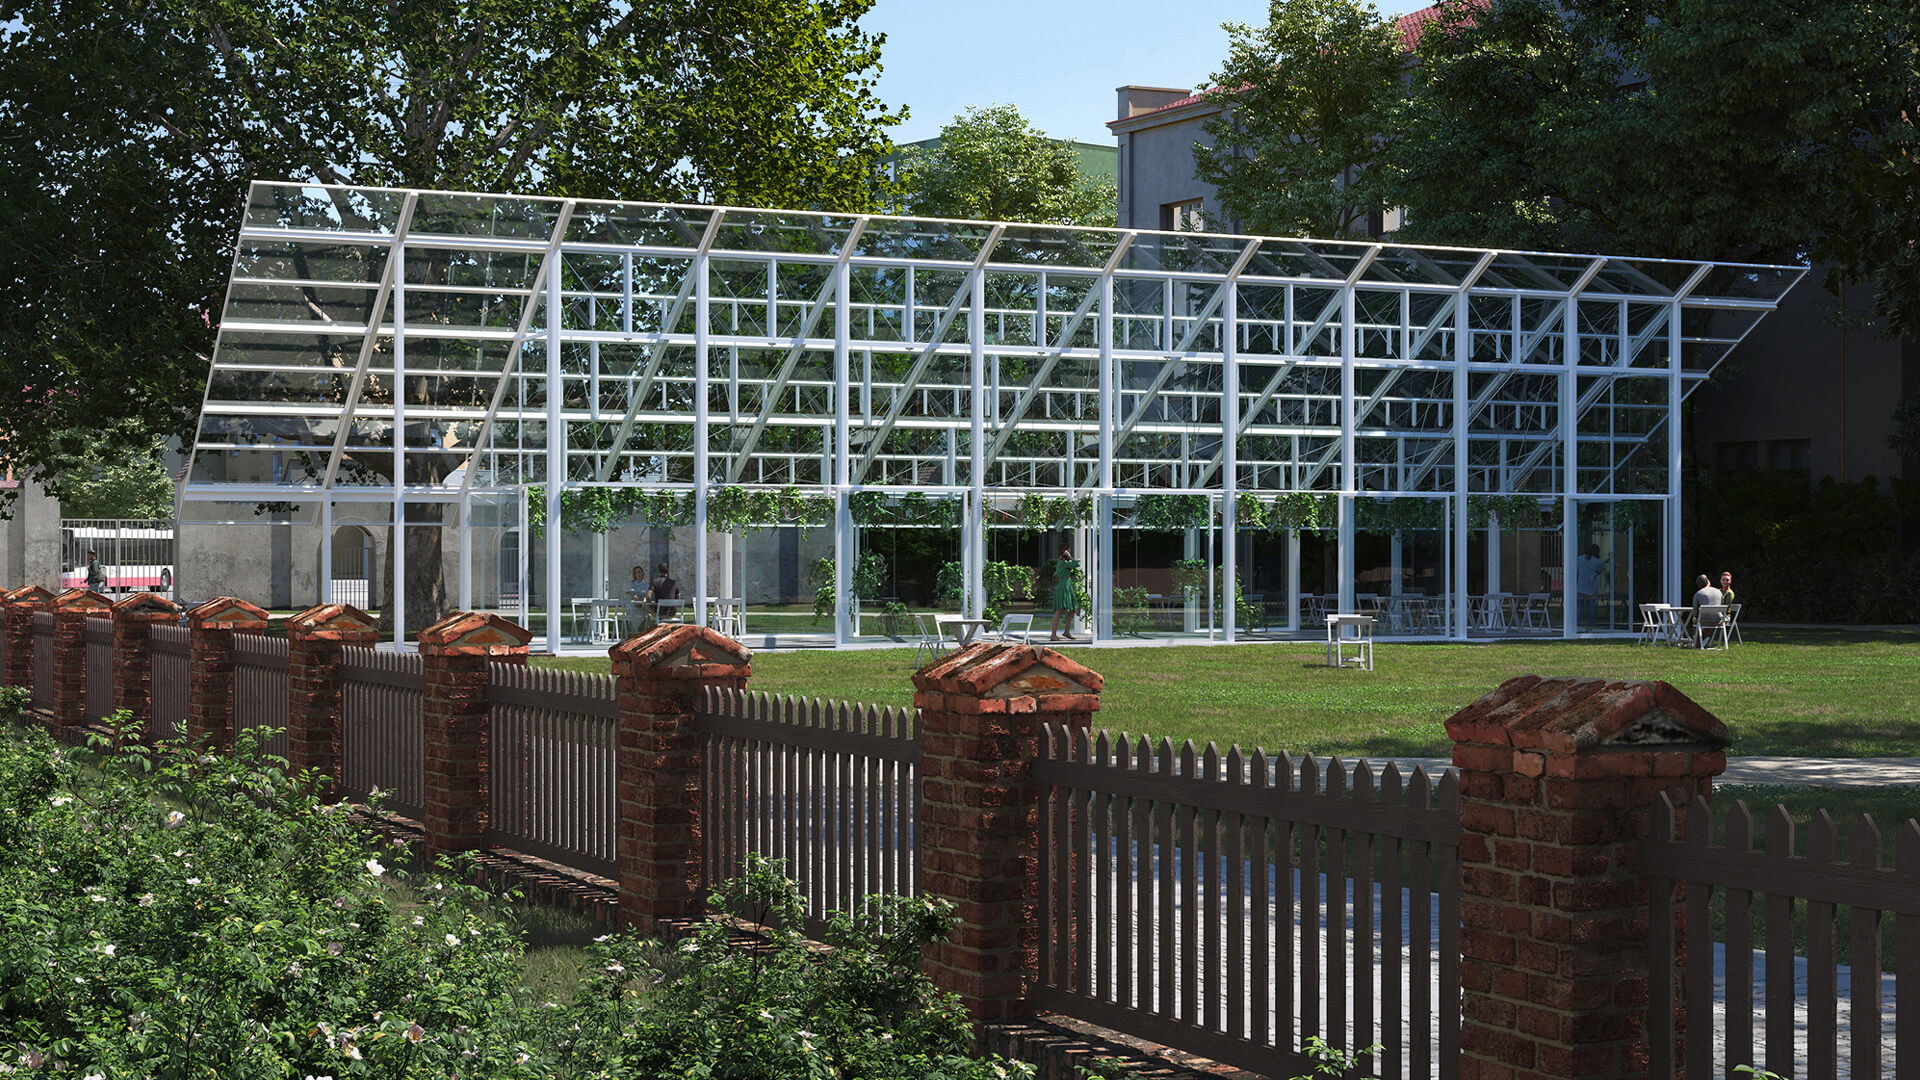 Rendering of the Mendel Greenhouse project | CHYBIK+KRISTOF | Greenhouse, Brno | STIRworld